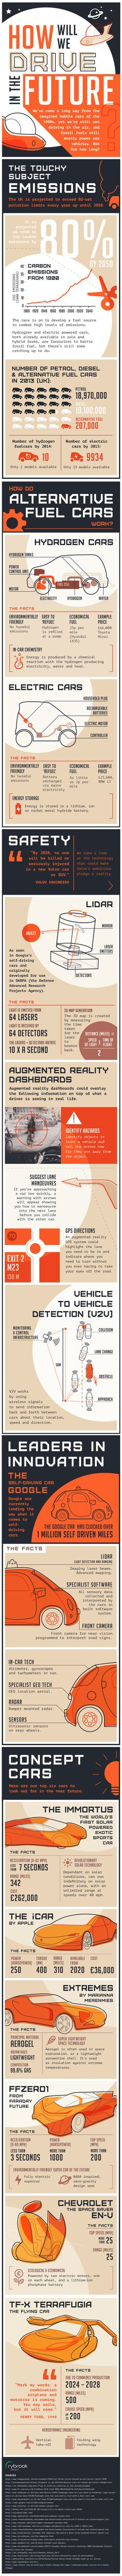 How Will We Drive in the Future? #Infographic #Cars #Transportation